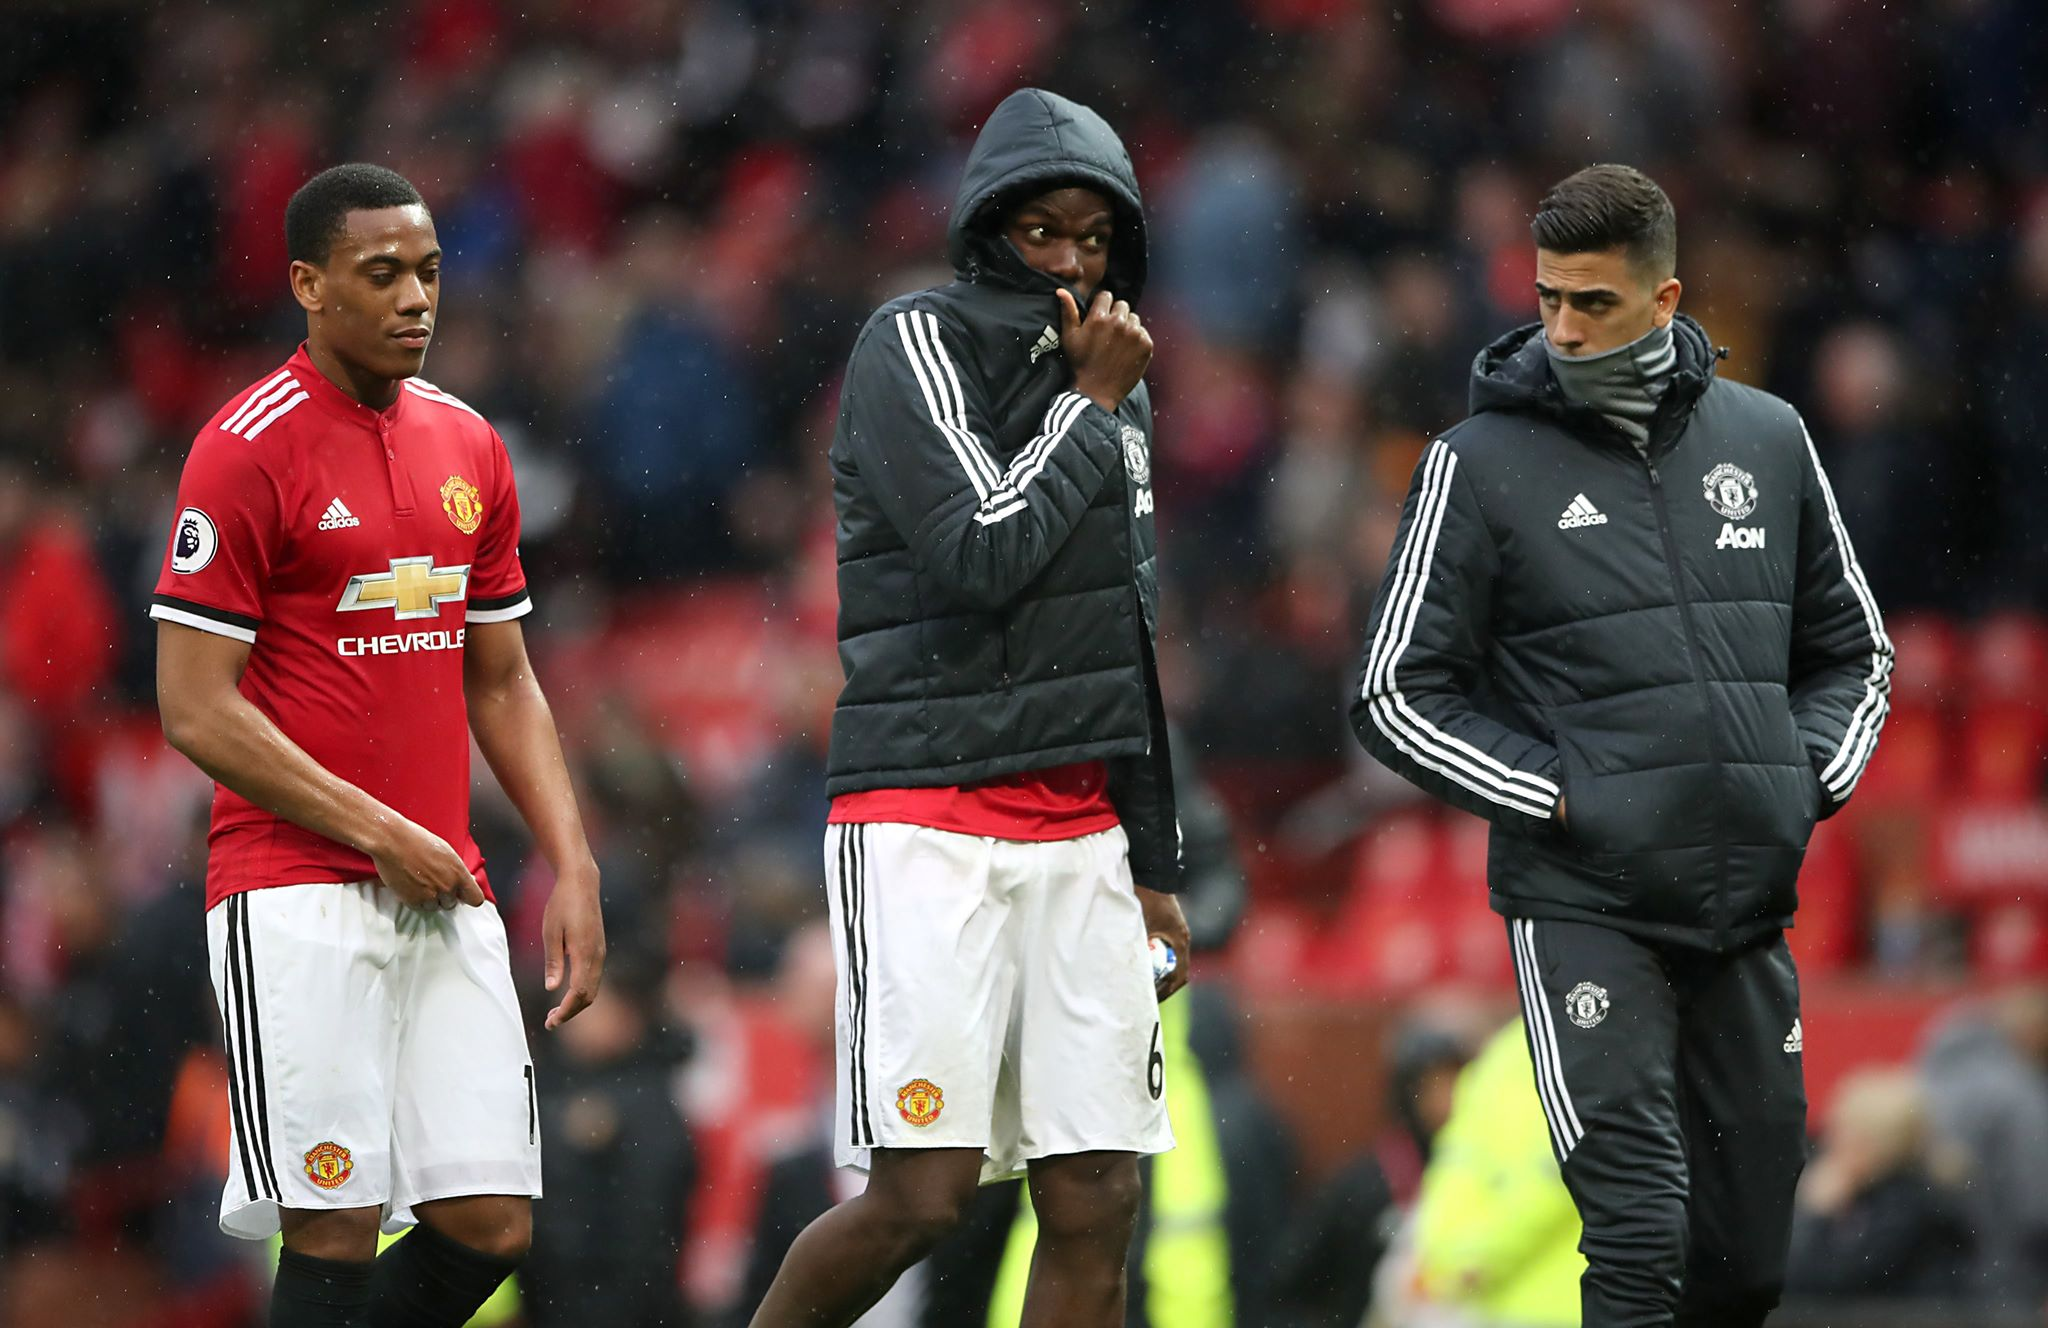 Manchester United stars face axe as manager Jose Mourinho fumes